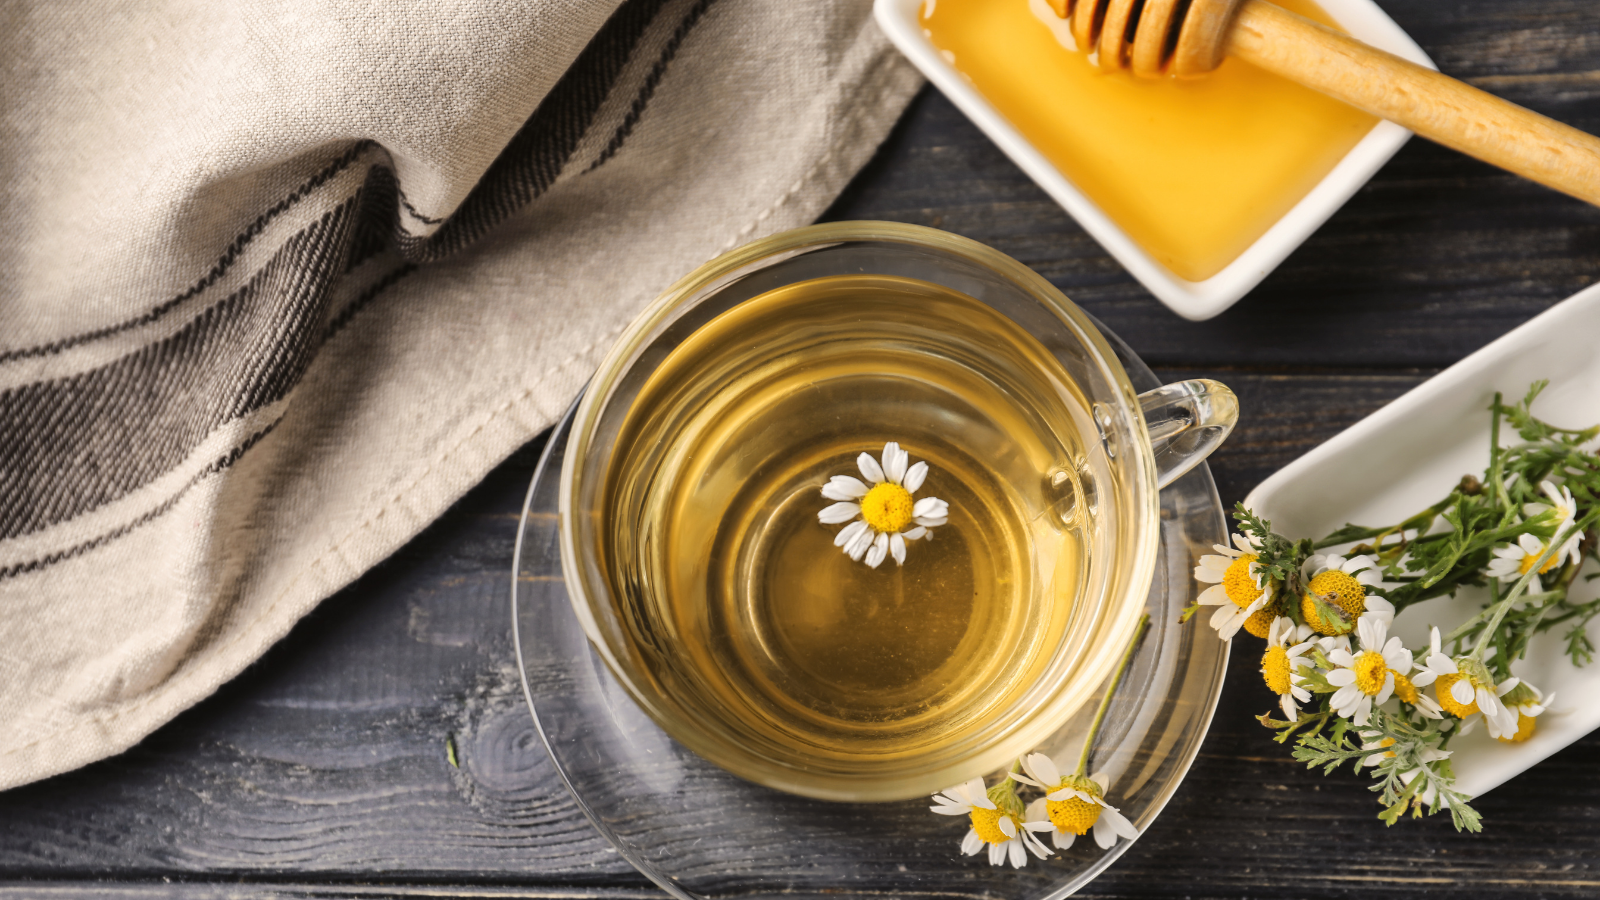 Cup of delicious camomile tea and honey on wooden table to have better sleep